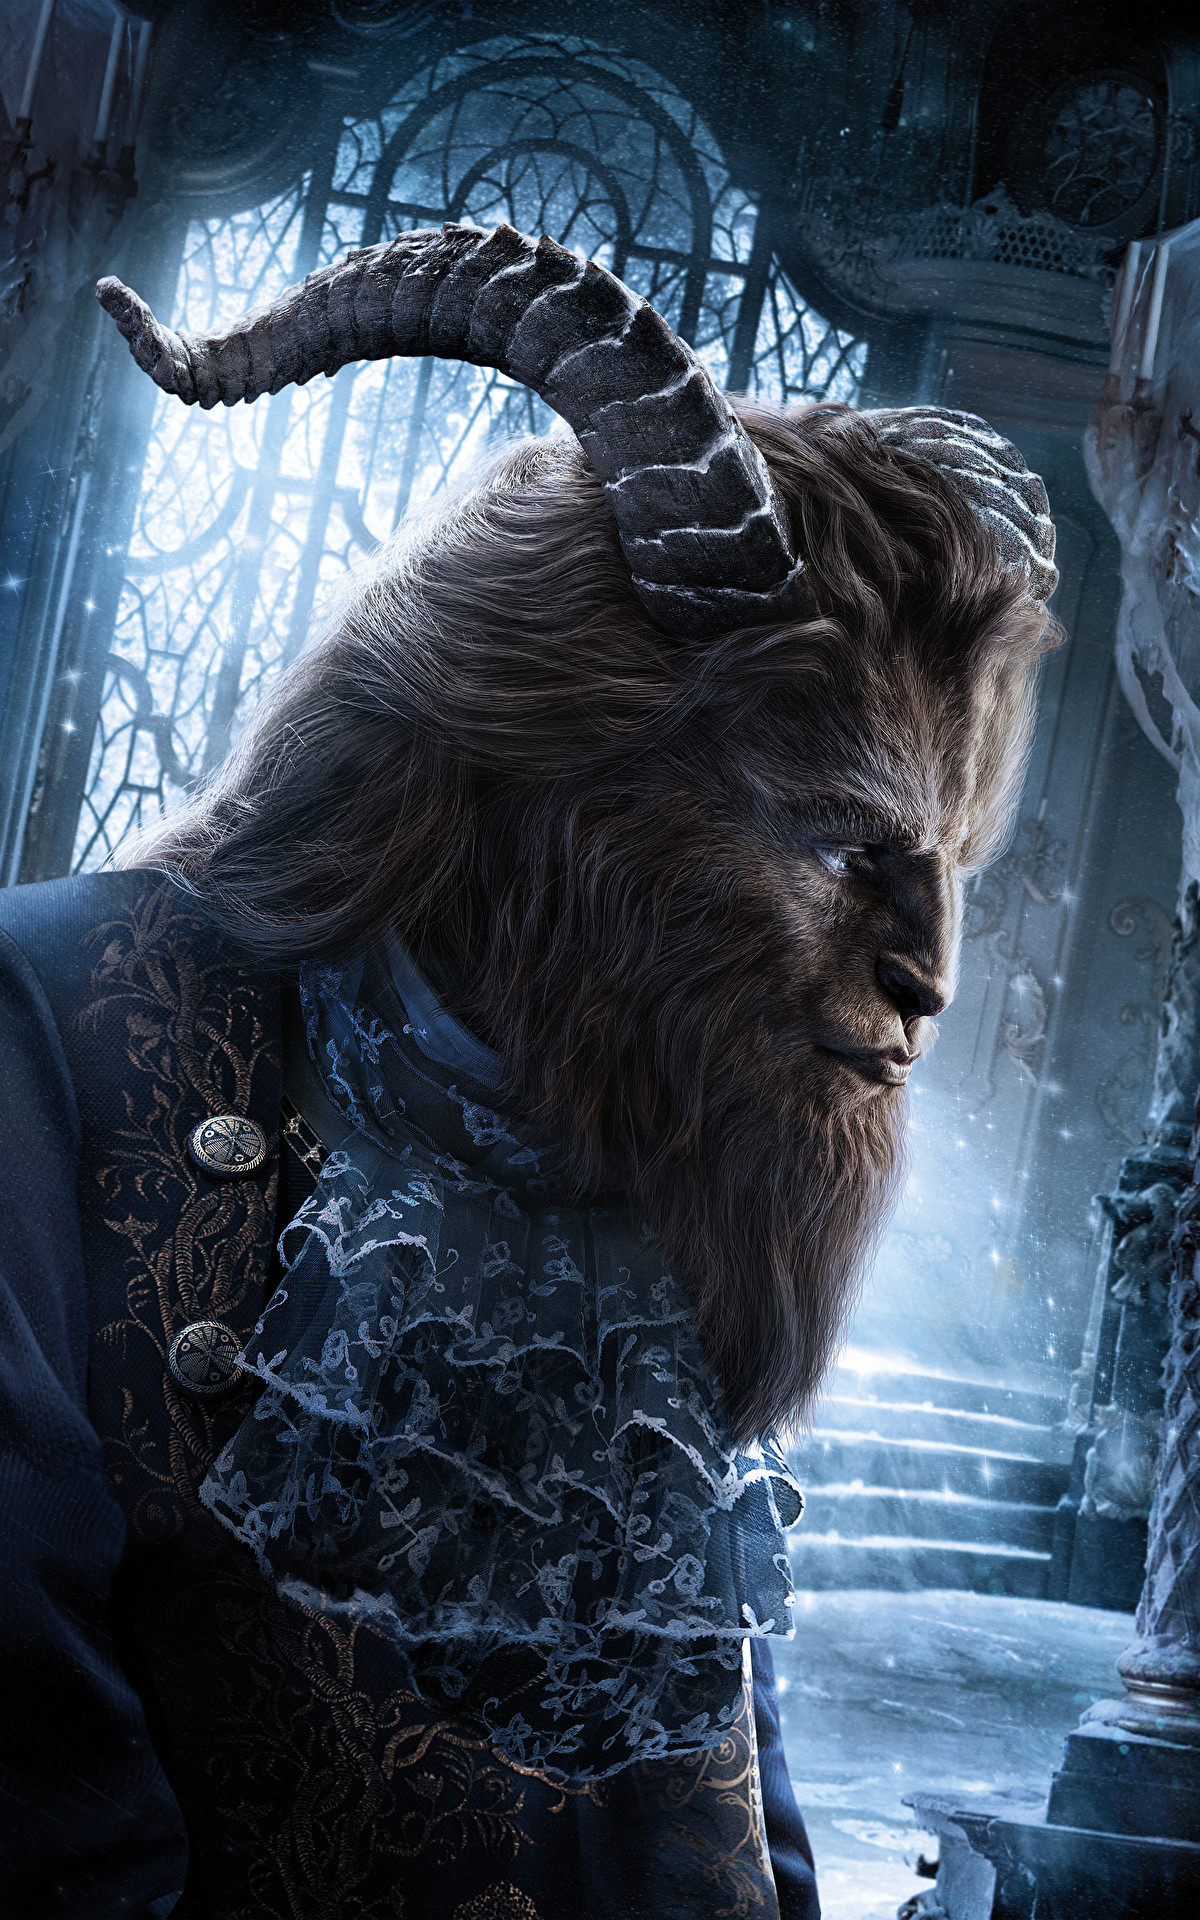 Wallpaper Beauty and the Beast 2017 Monsters Horns Movies 1200×1920